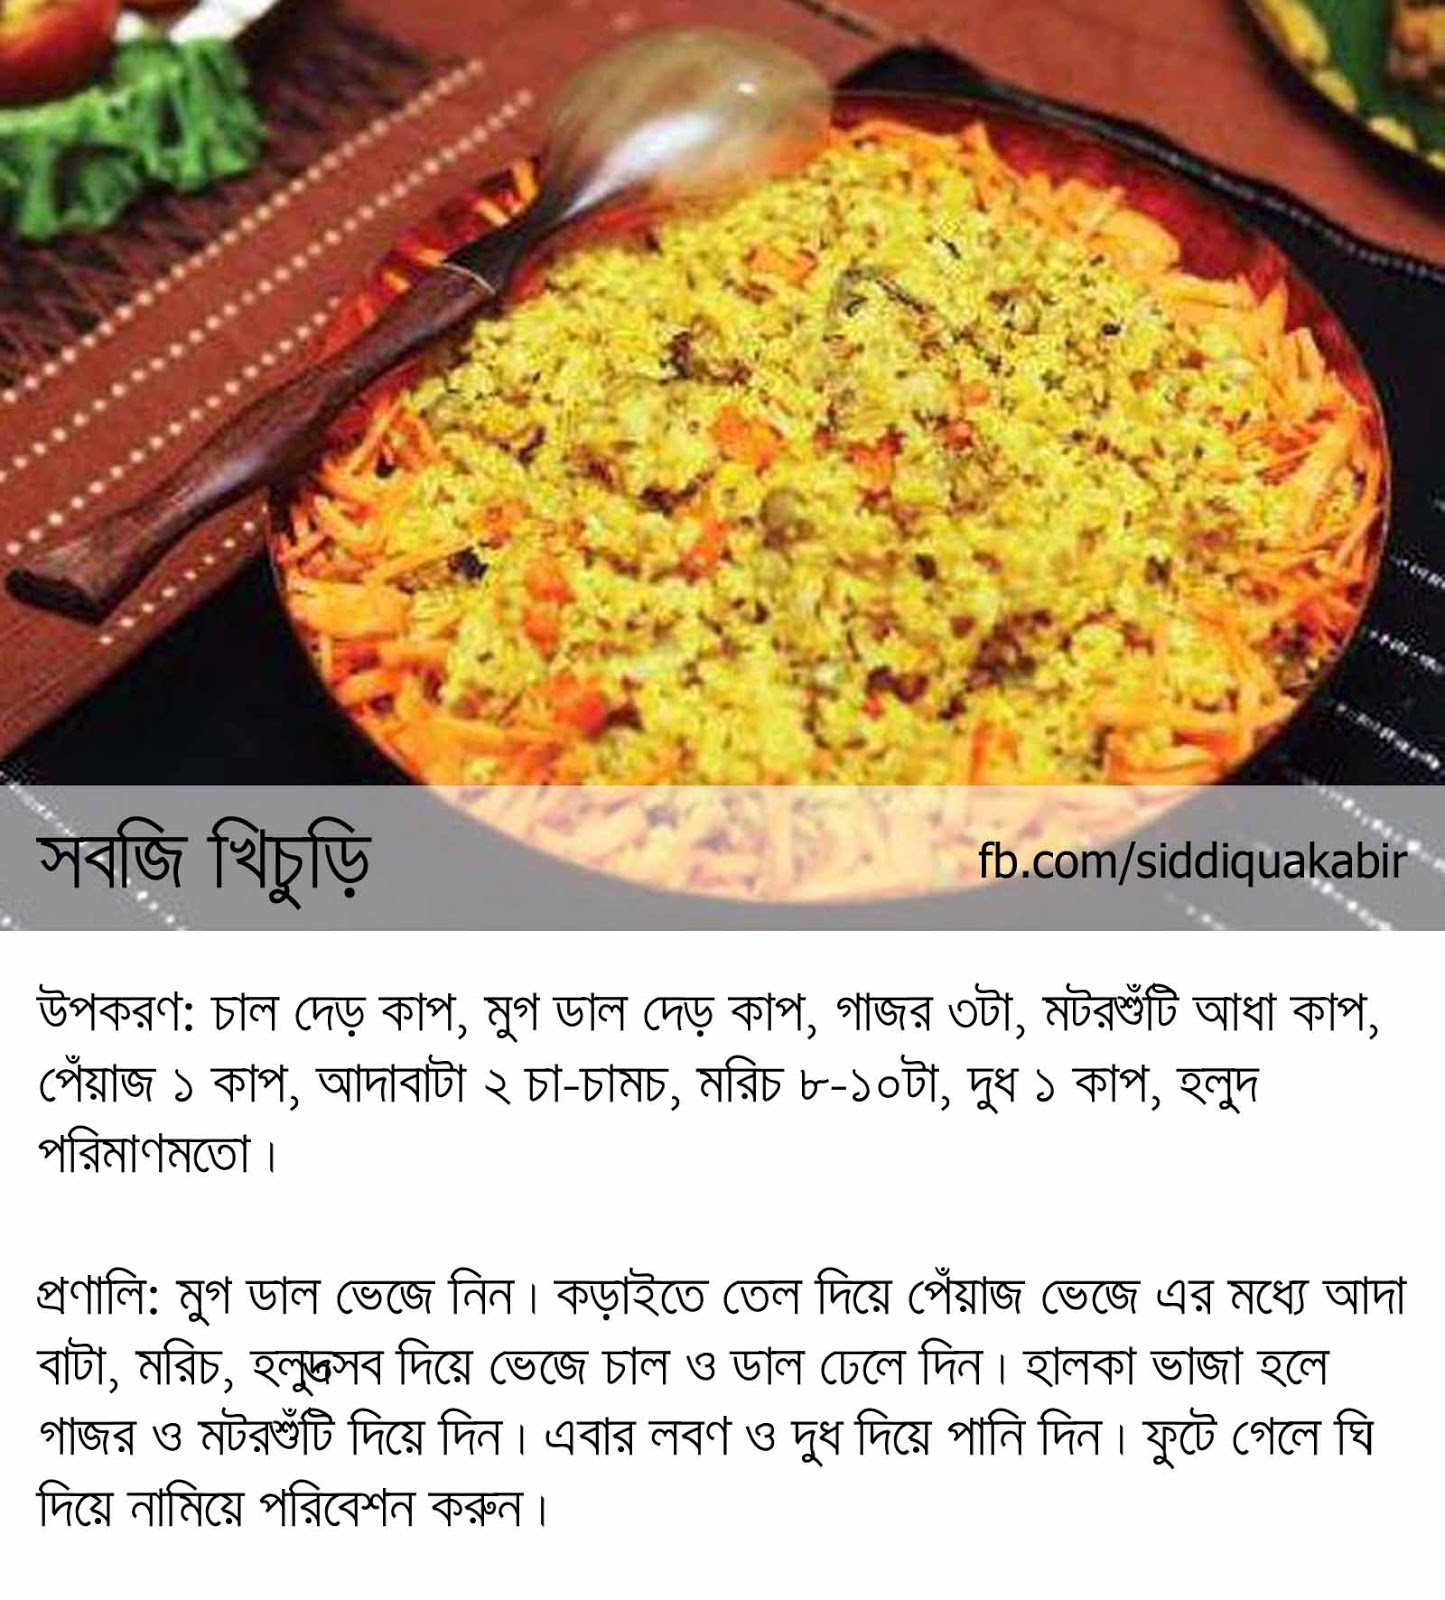 Bangali foods some khichuri recipes in bangla sobji khichuri vegetable khichuri forumfinder